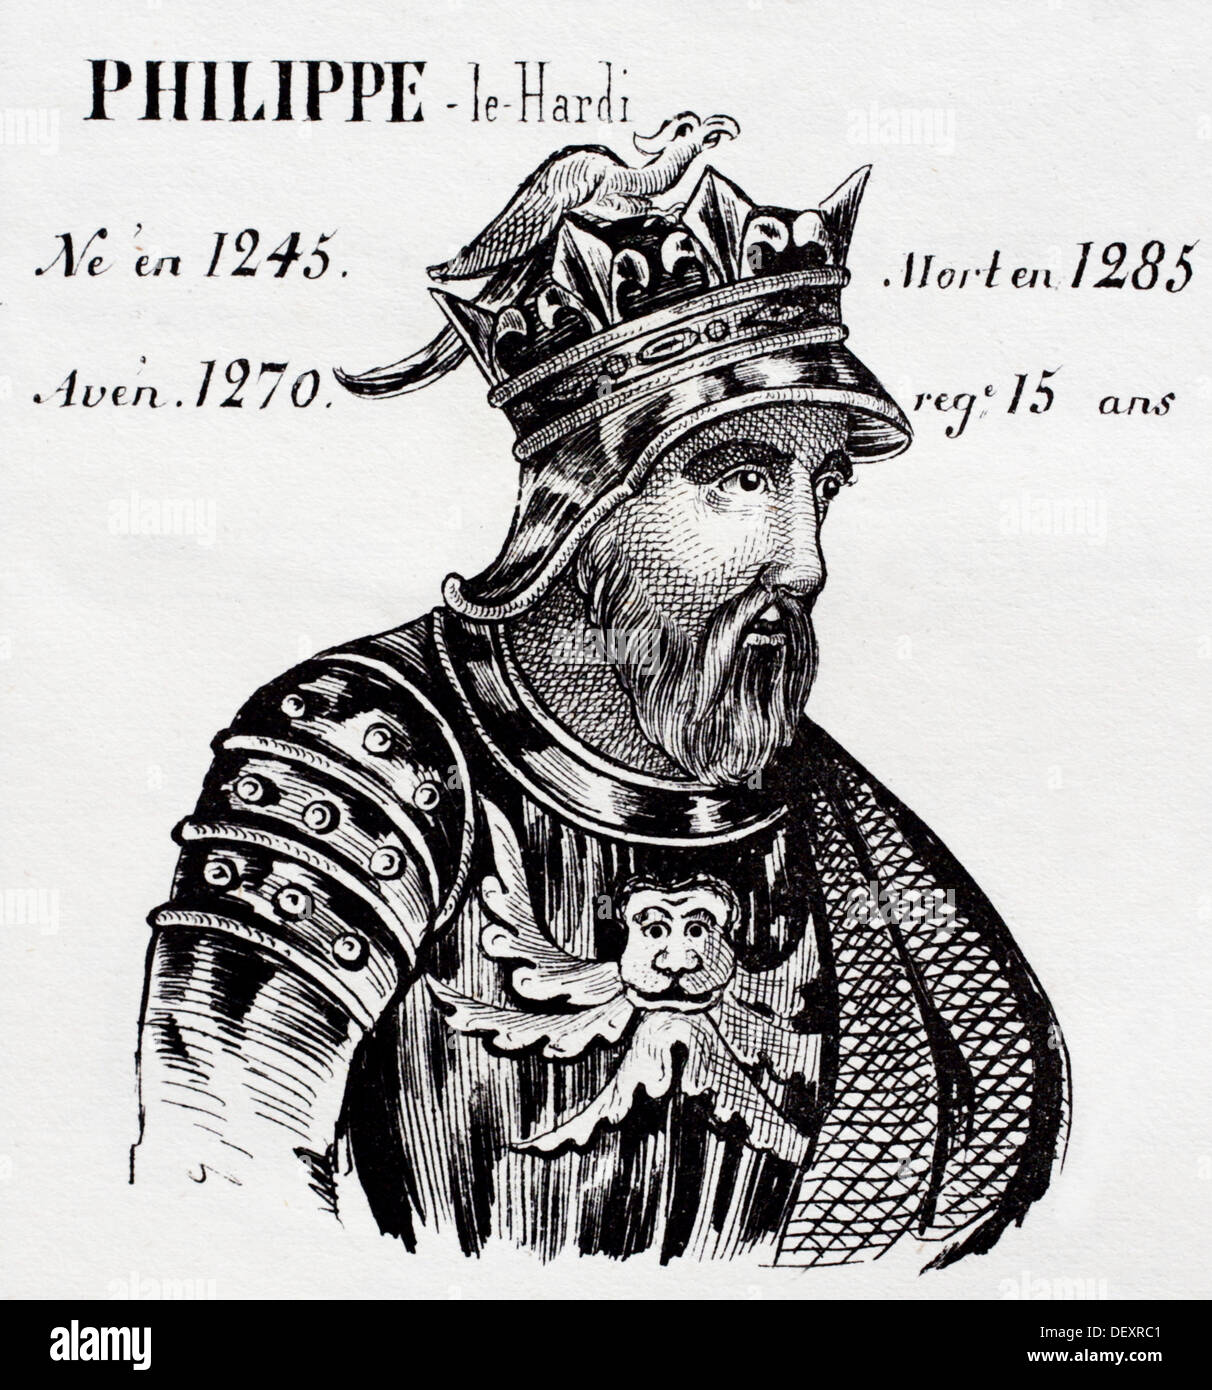 Philip III the Bold, king of France from 1270 to 1285. History of France